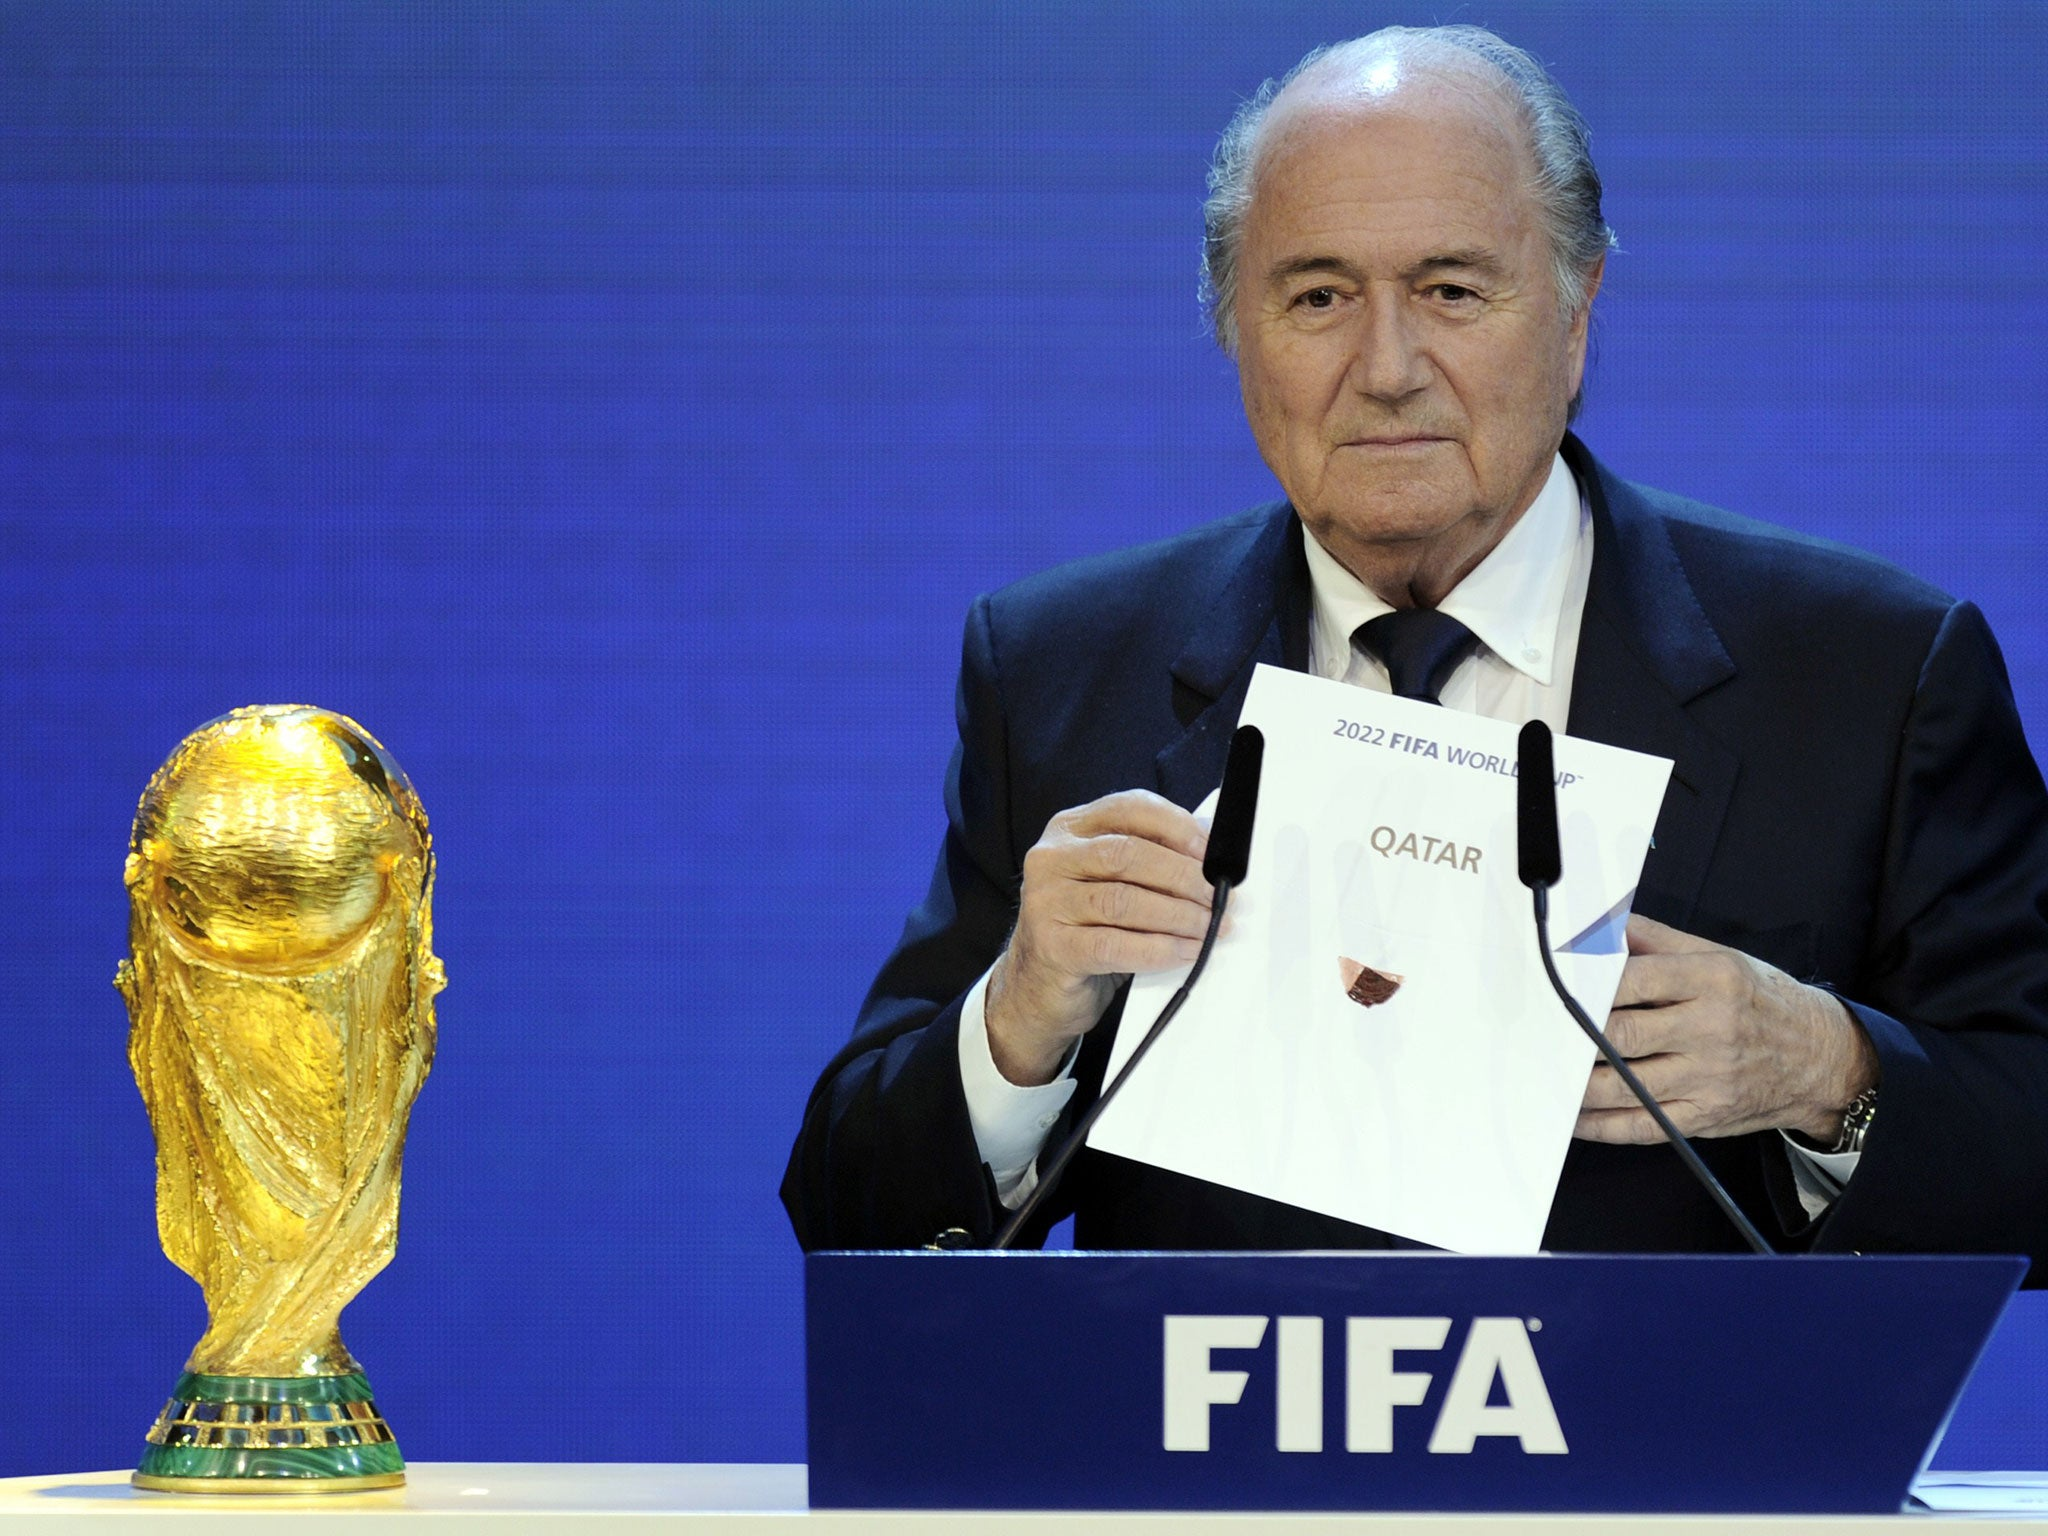 Qatar World Cup 2022 bid team accused of secret 'black-ops' campaign to sabotage rivals